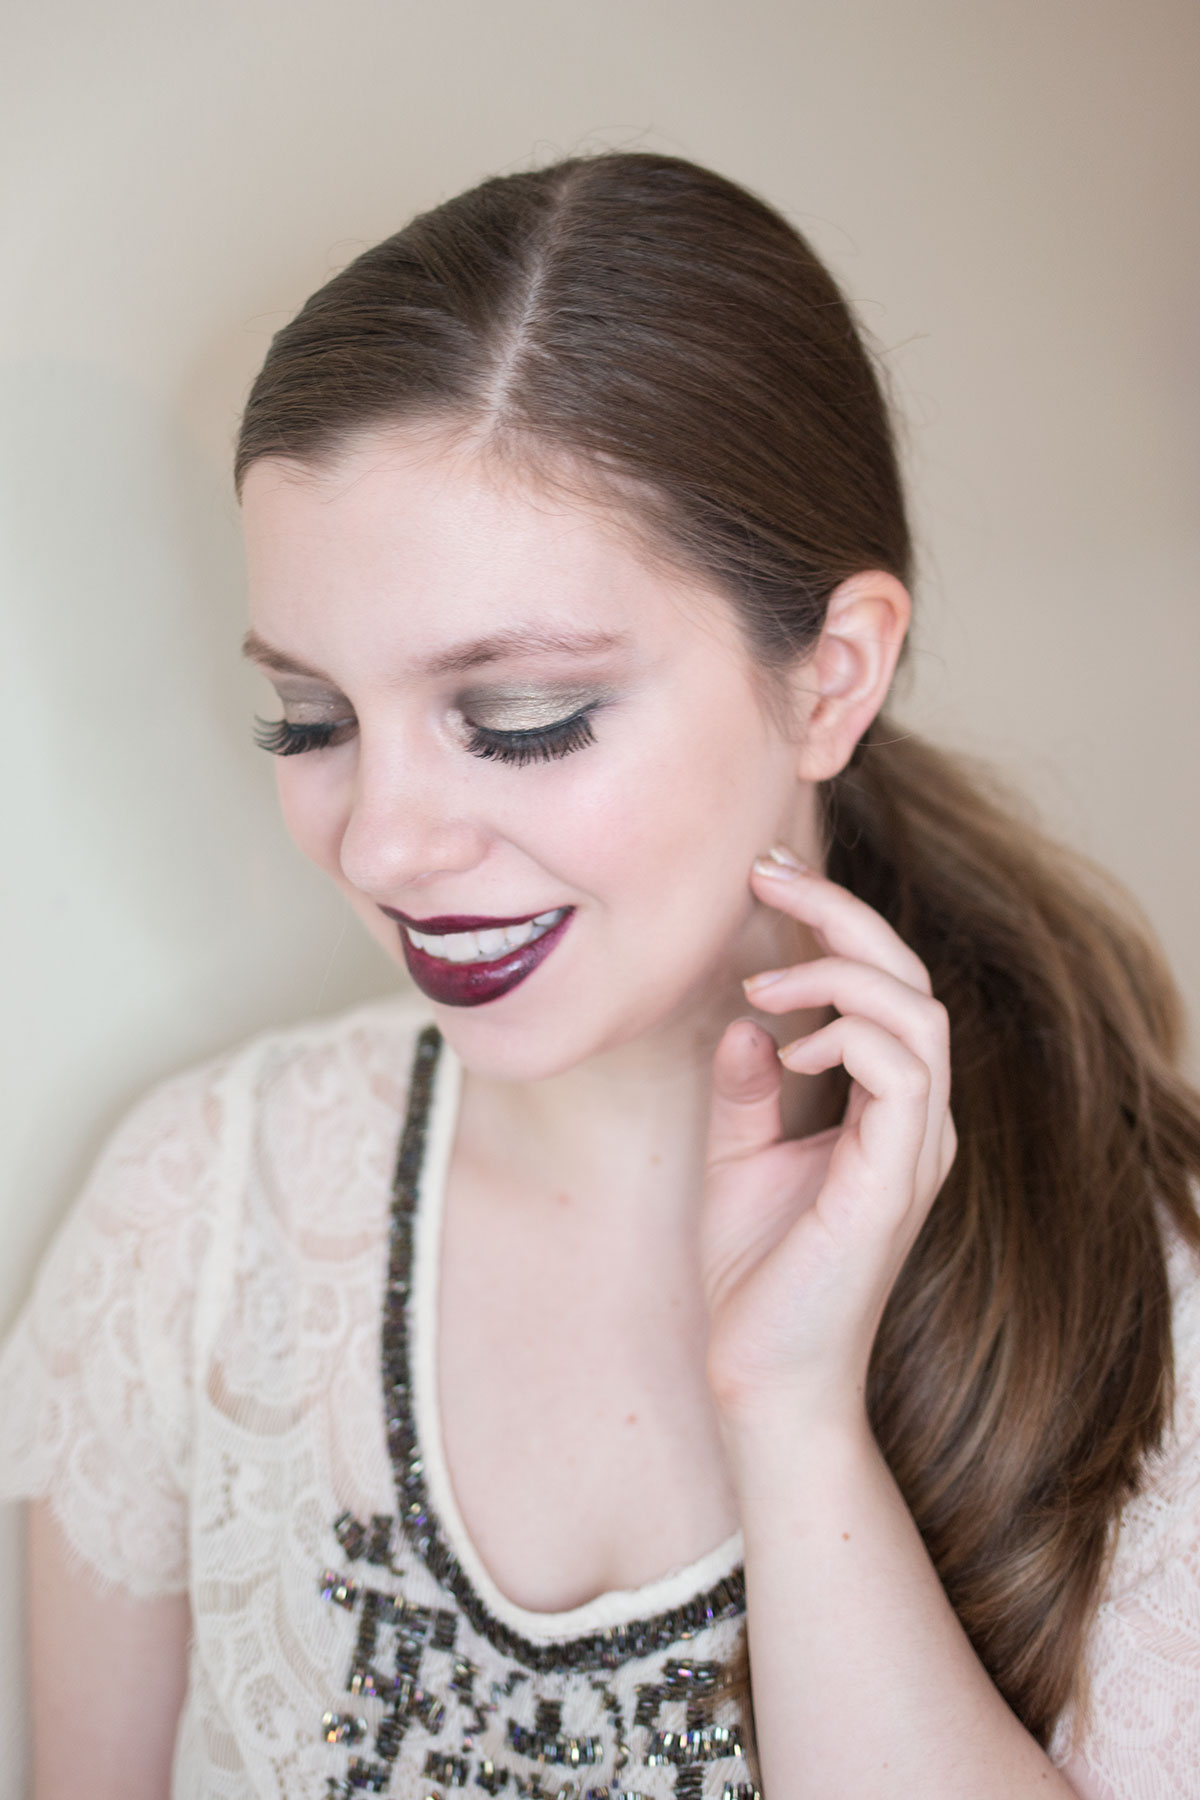 New Years Eve Makeup Tutorial: Champagne Smokey Eye & Plum Lip // hellorigby.com seattle fashion & beauty blog